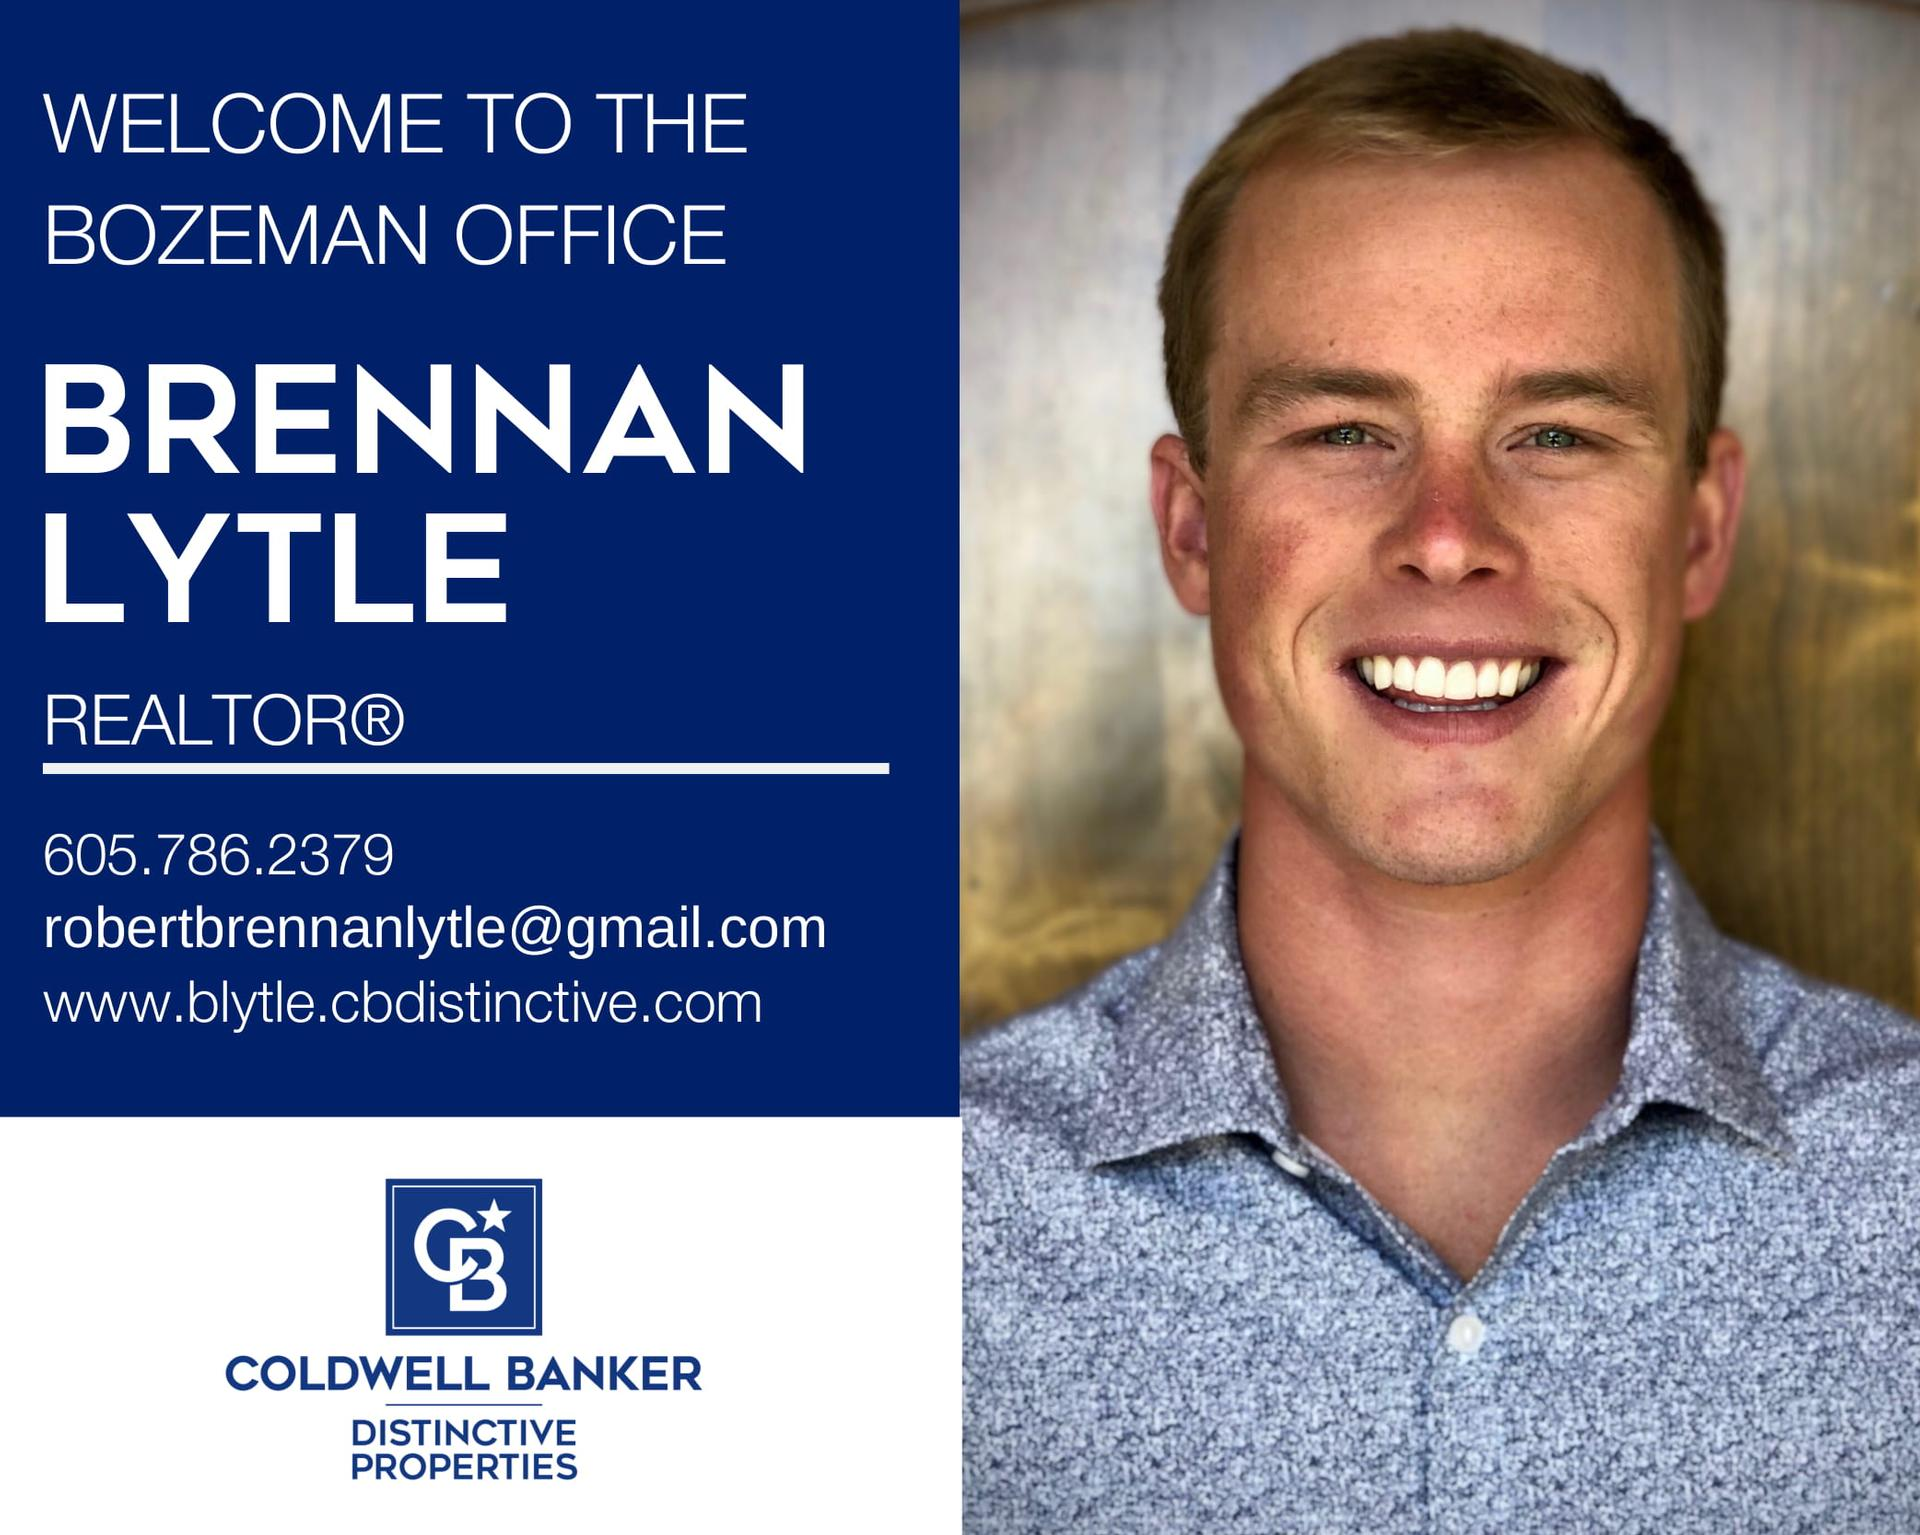 We are excited that Brennan Lytle has joined to our Coldwell Banker family! Main Photo